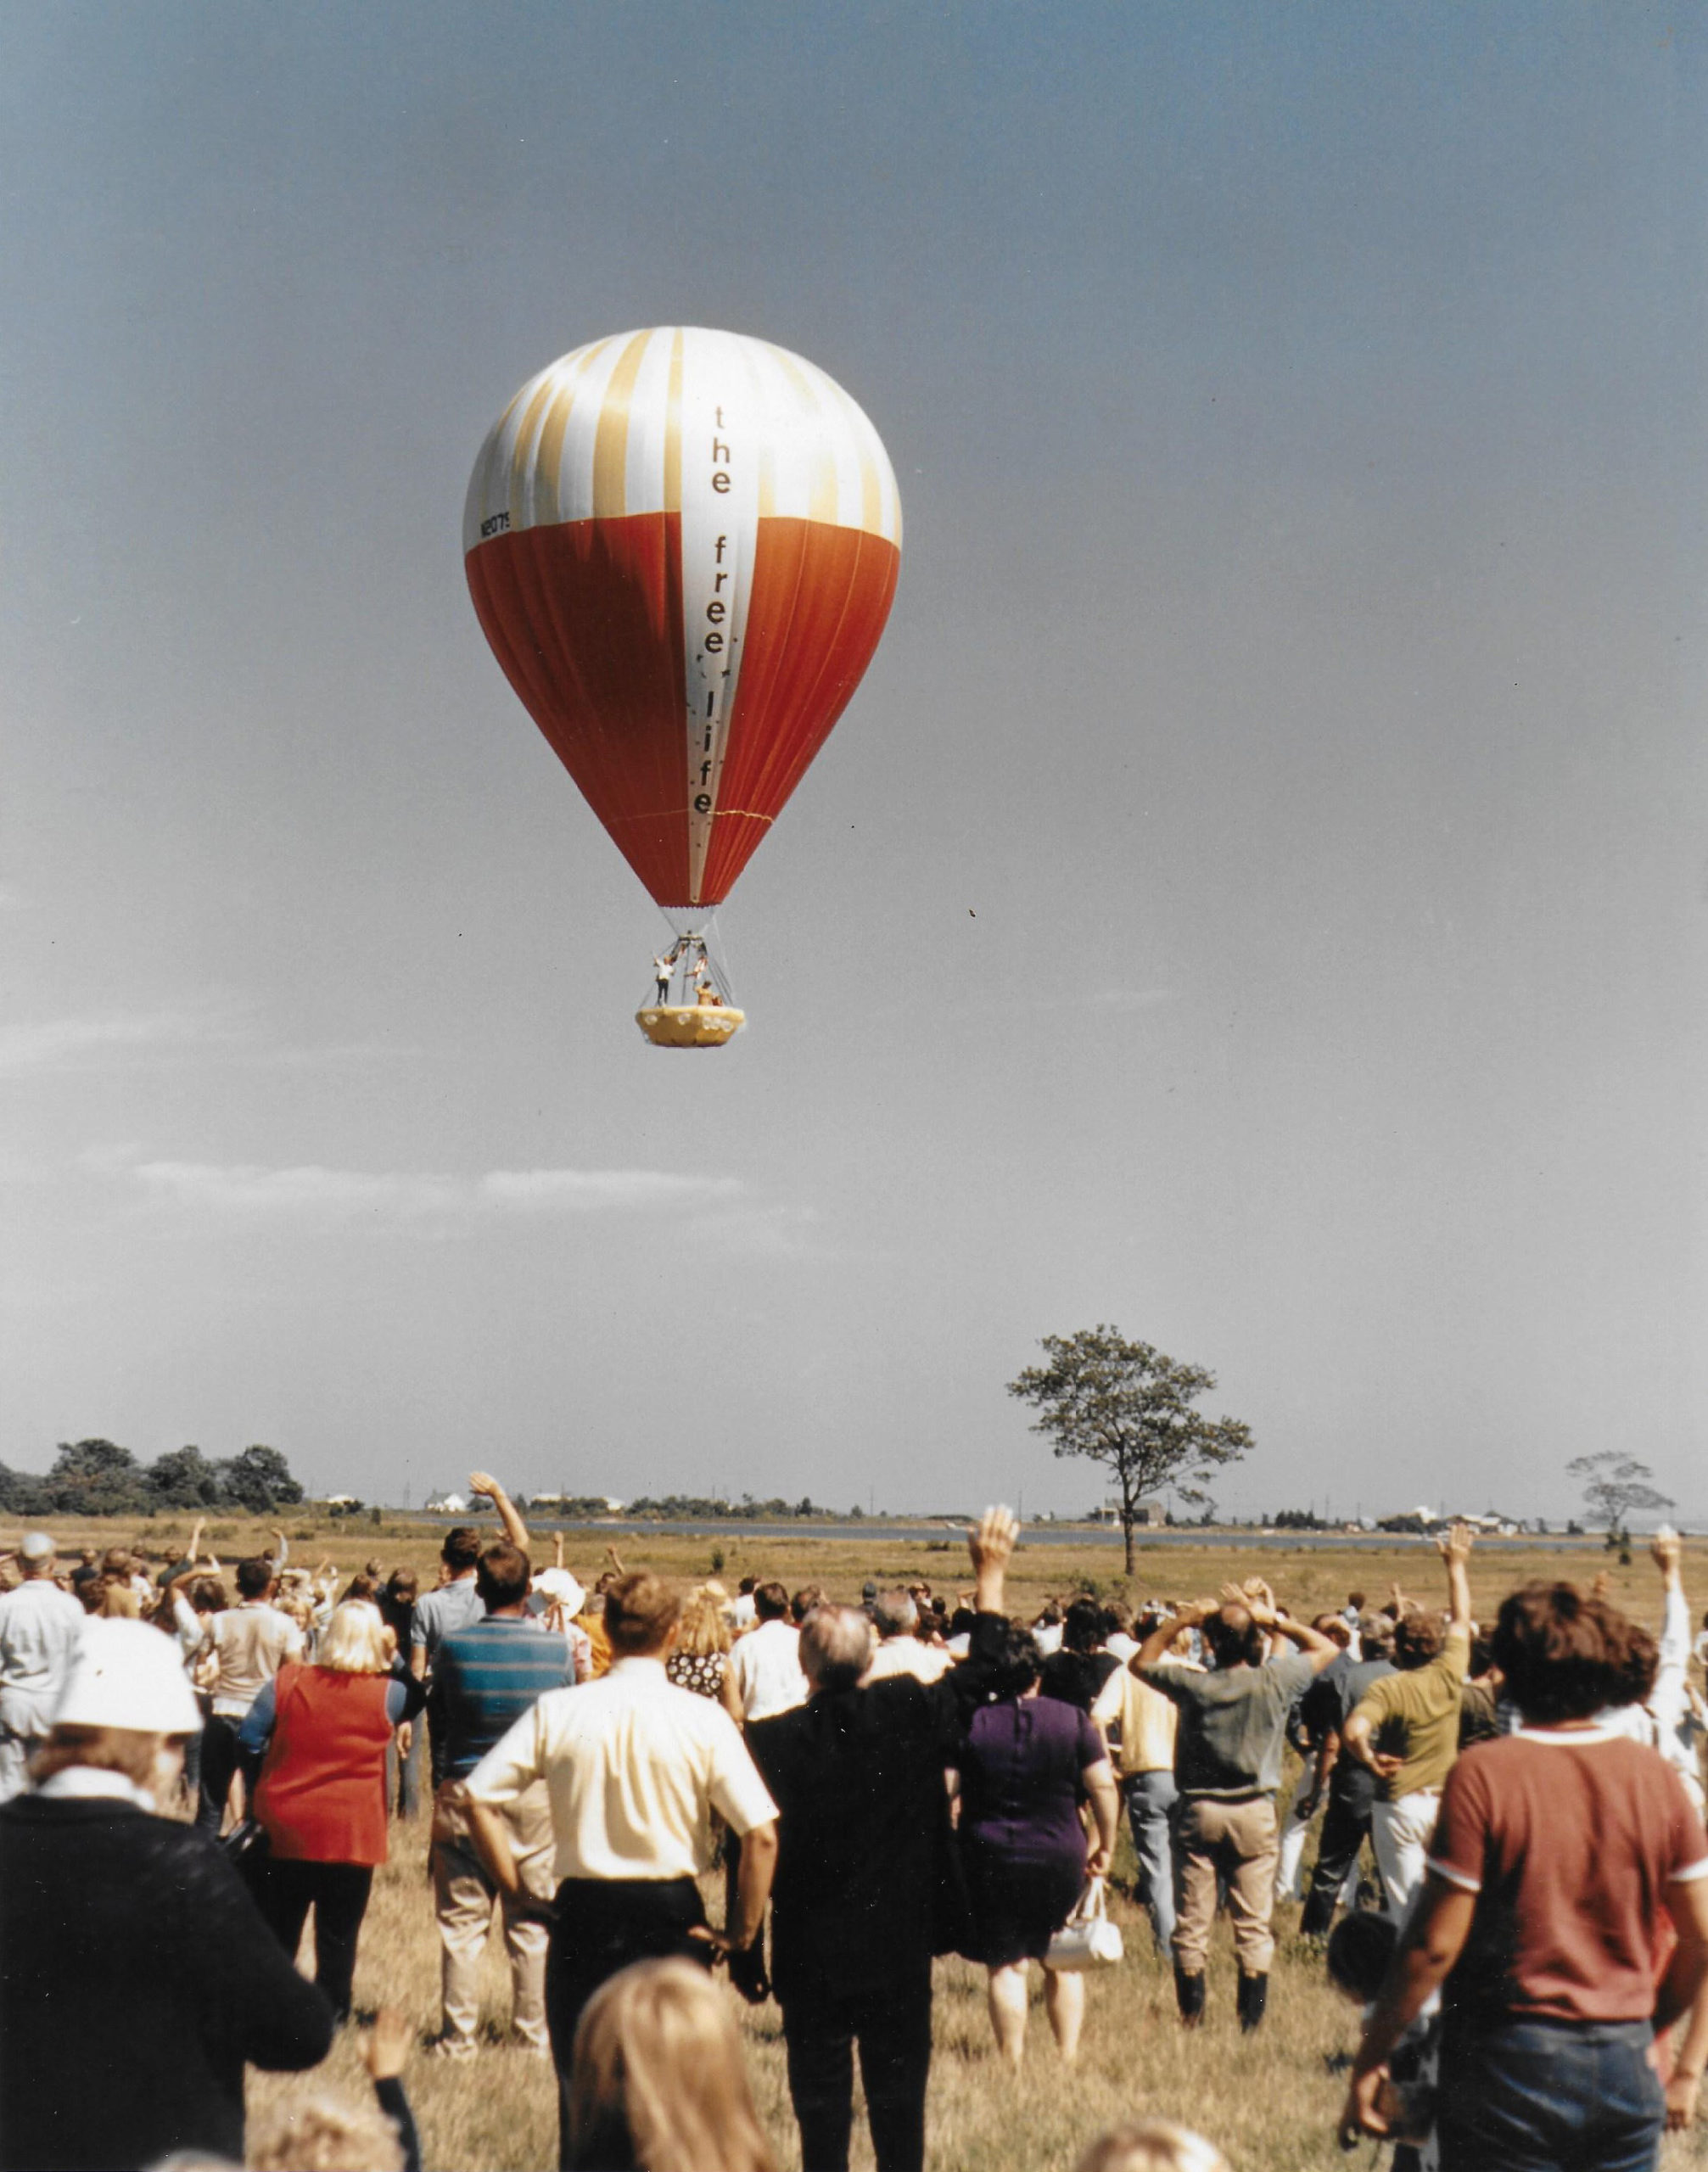 The Free Life balloon launch in Srings. September 20, 1970.